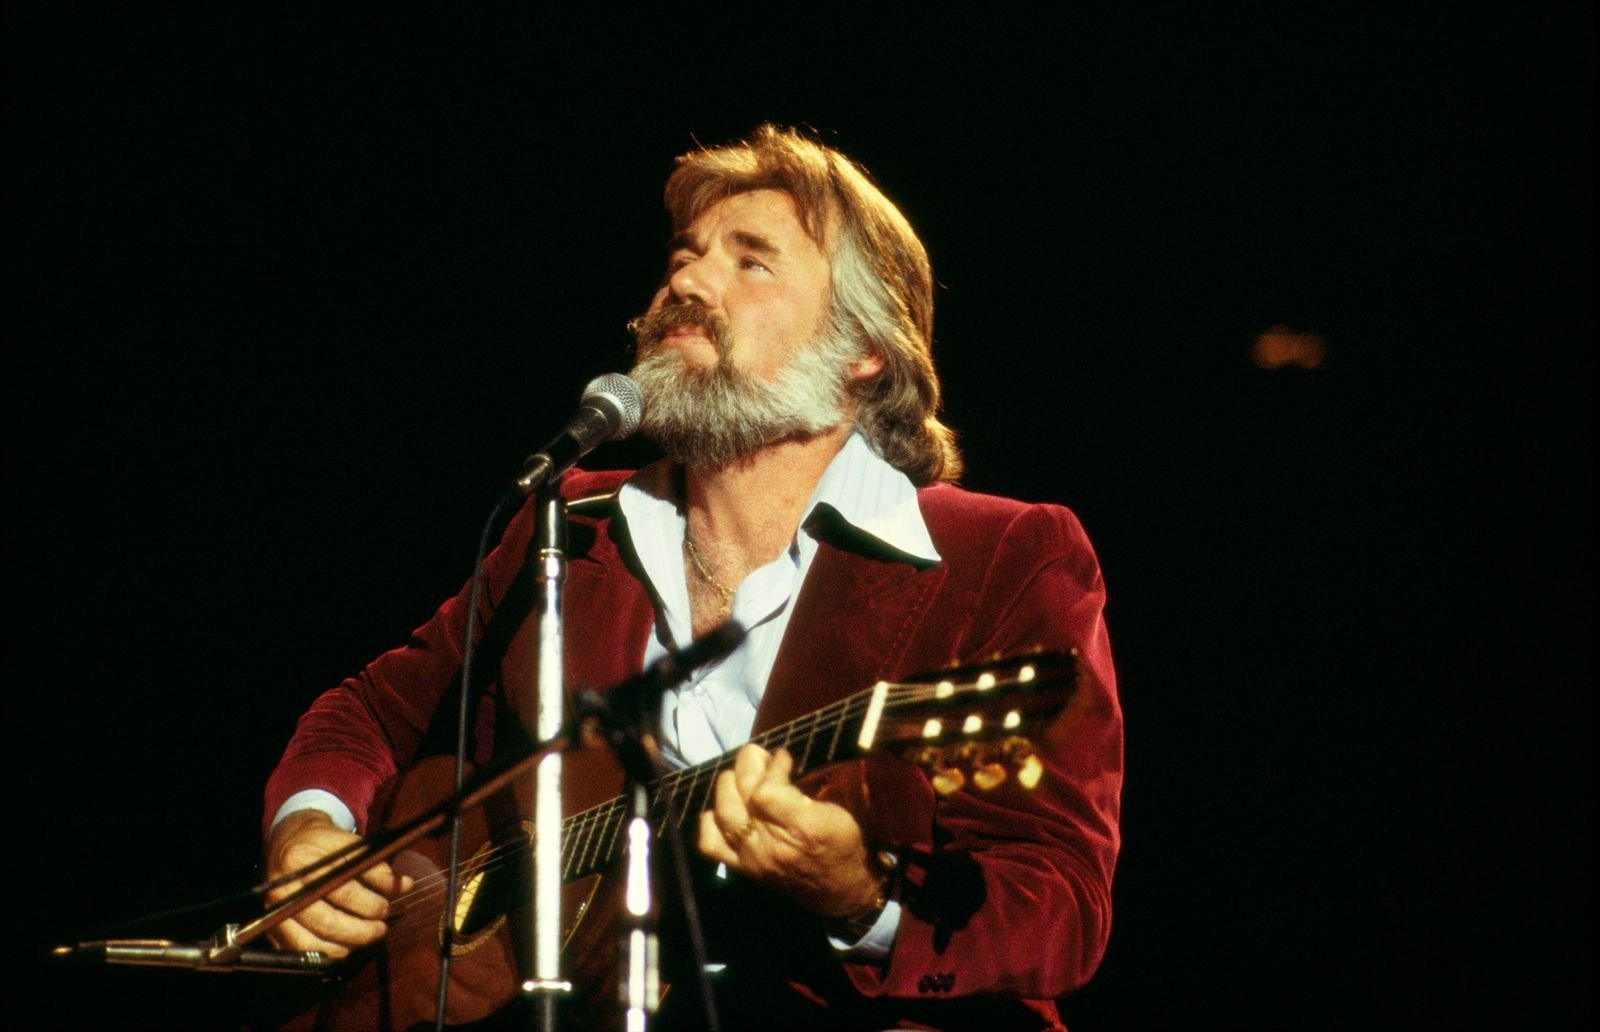 Kenny Rogers performing on stage in 1978 | Source: Getty Images